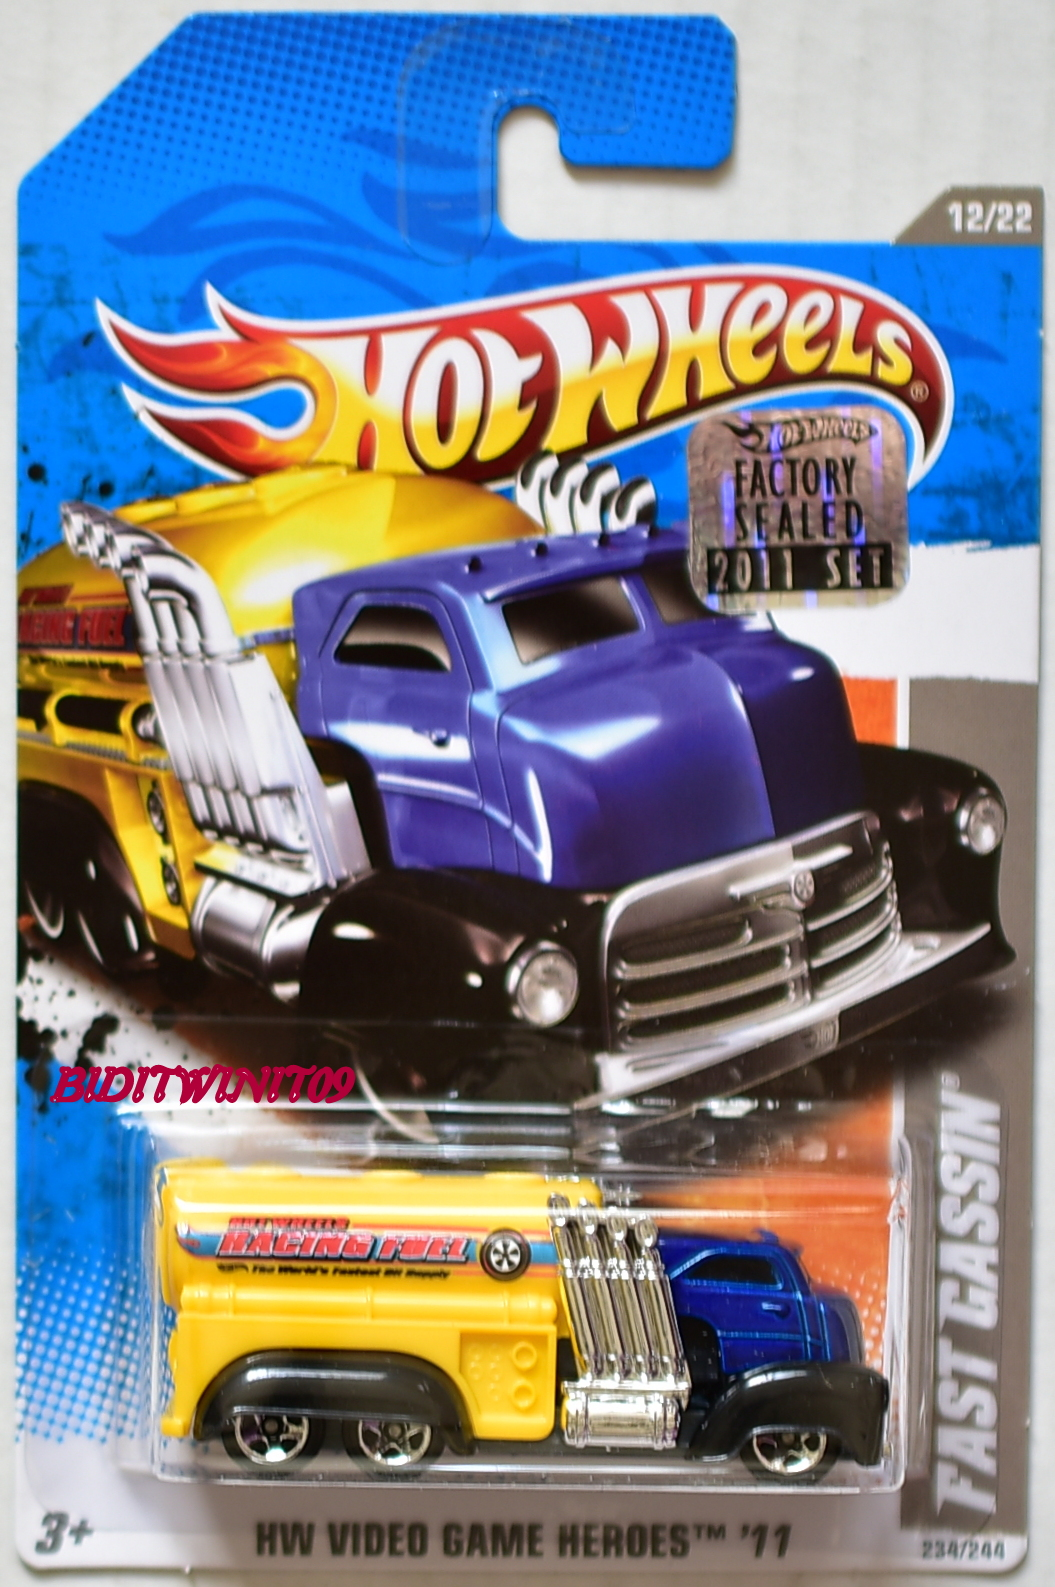 HOT WHEELS 2011 HW VIDEO GAME HEROES FAST GASSIN #12/22 BLUE FACTORY SEALED